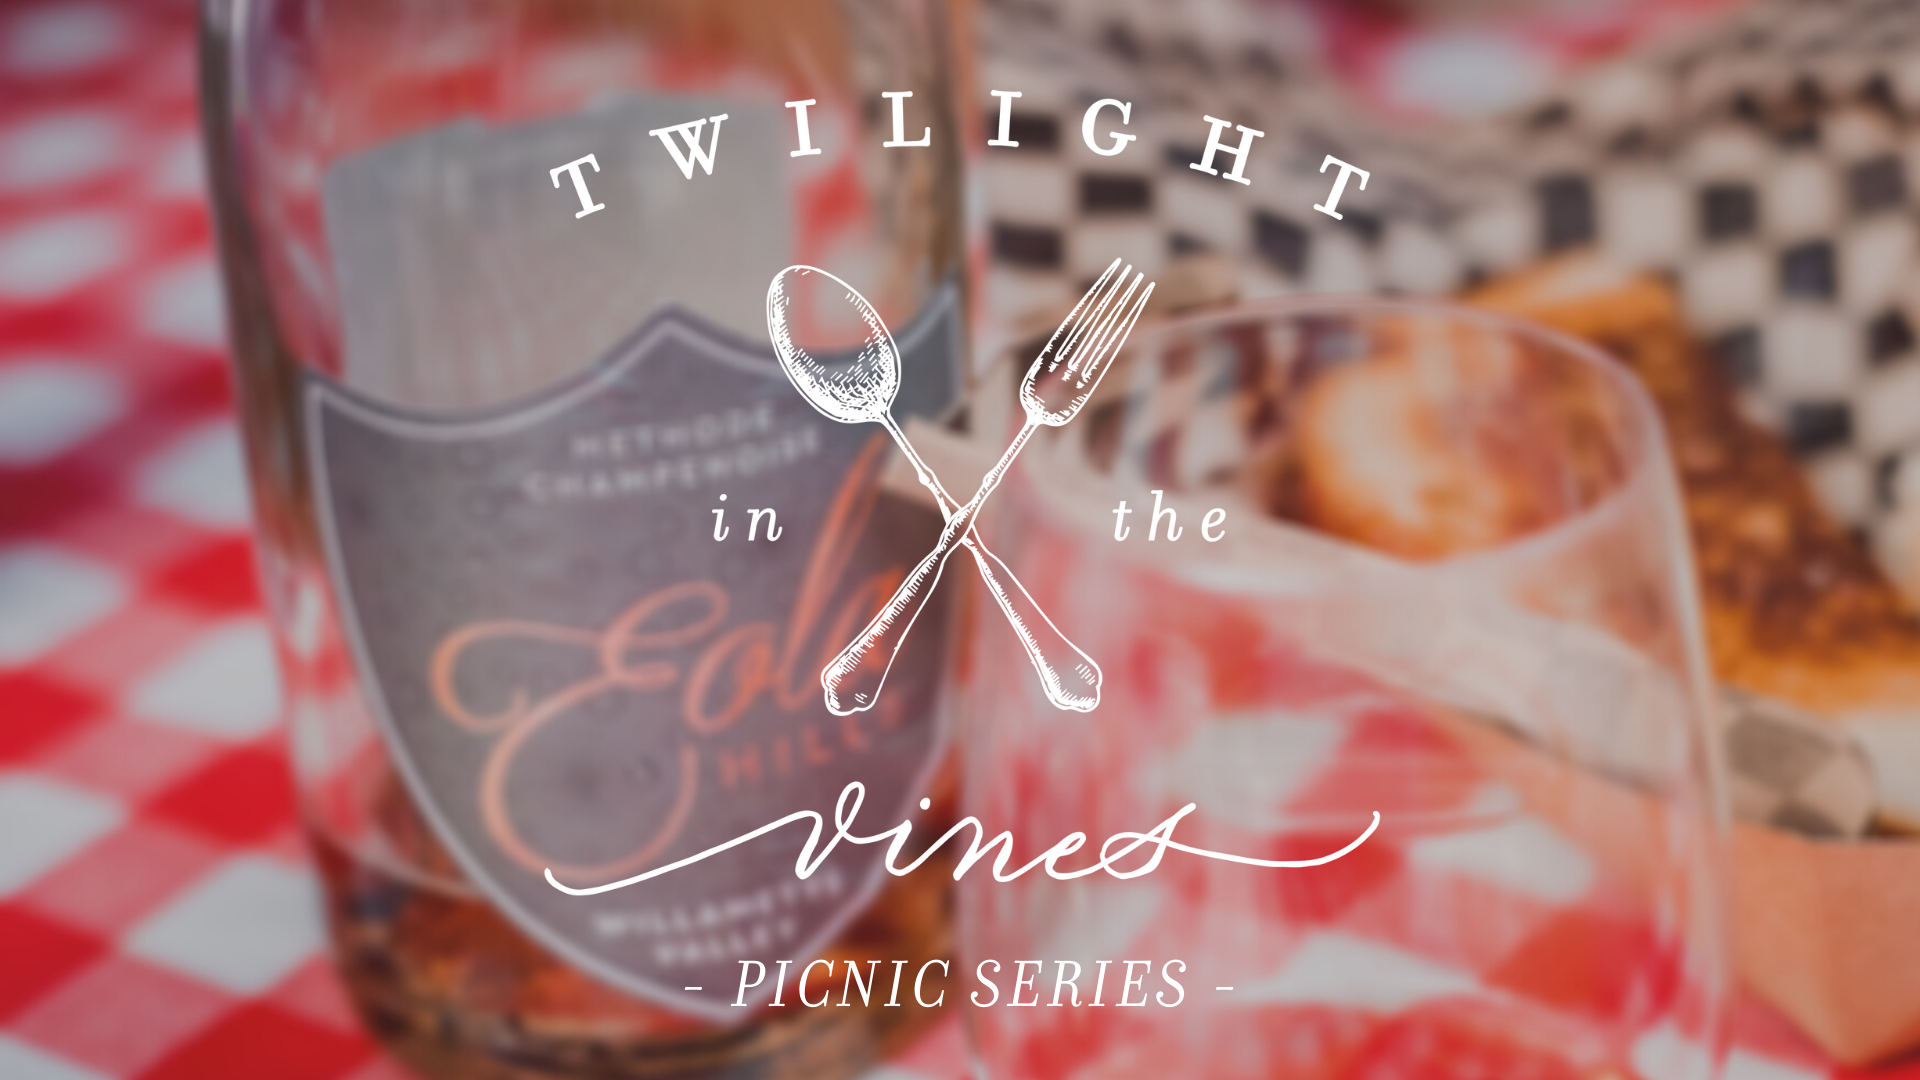 Twilight In The Vines Picnic Series at Eola Hills Legacy Estate Vineyard in Oregon's Willamette Valley